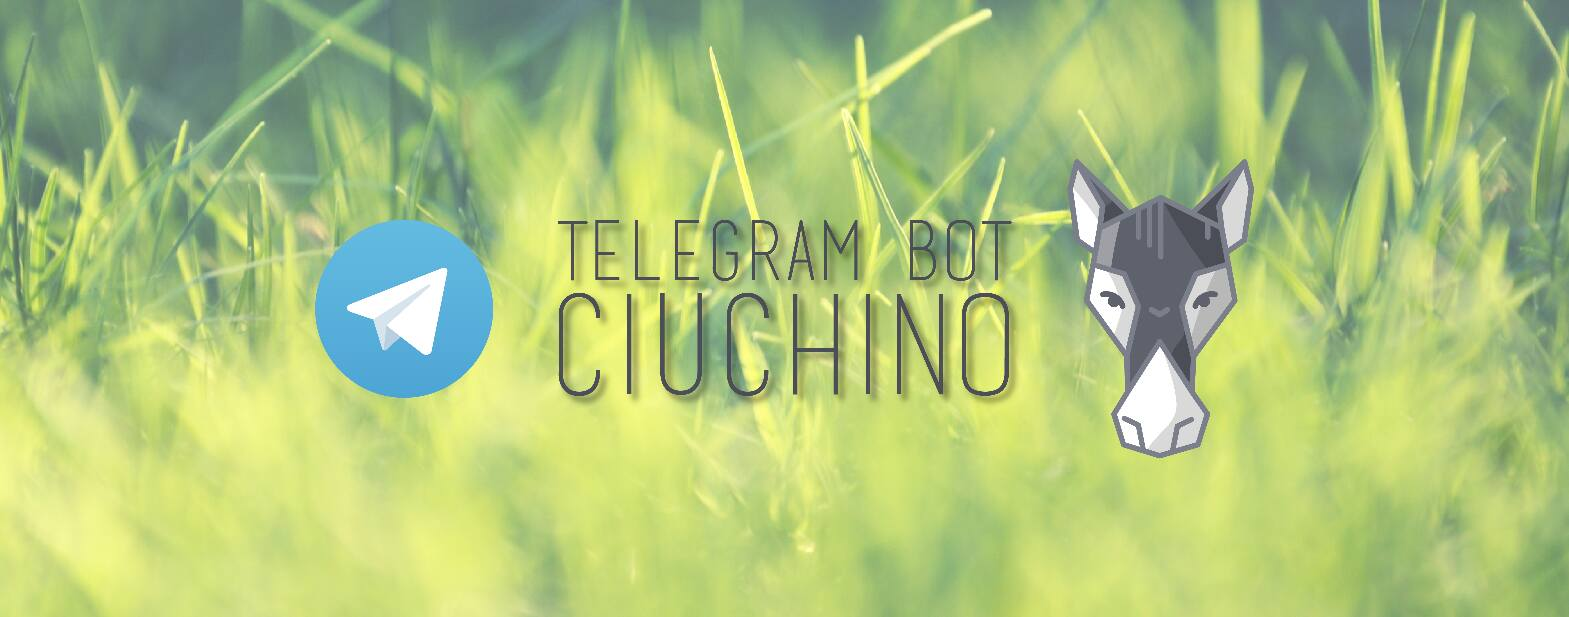 ciuchinobot a funny telegram bot